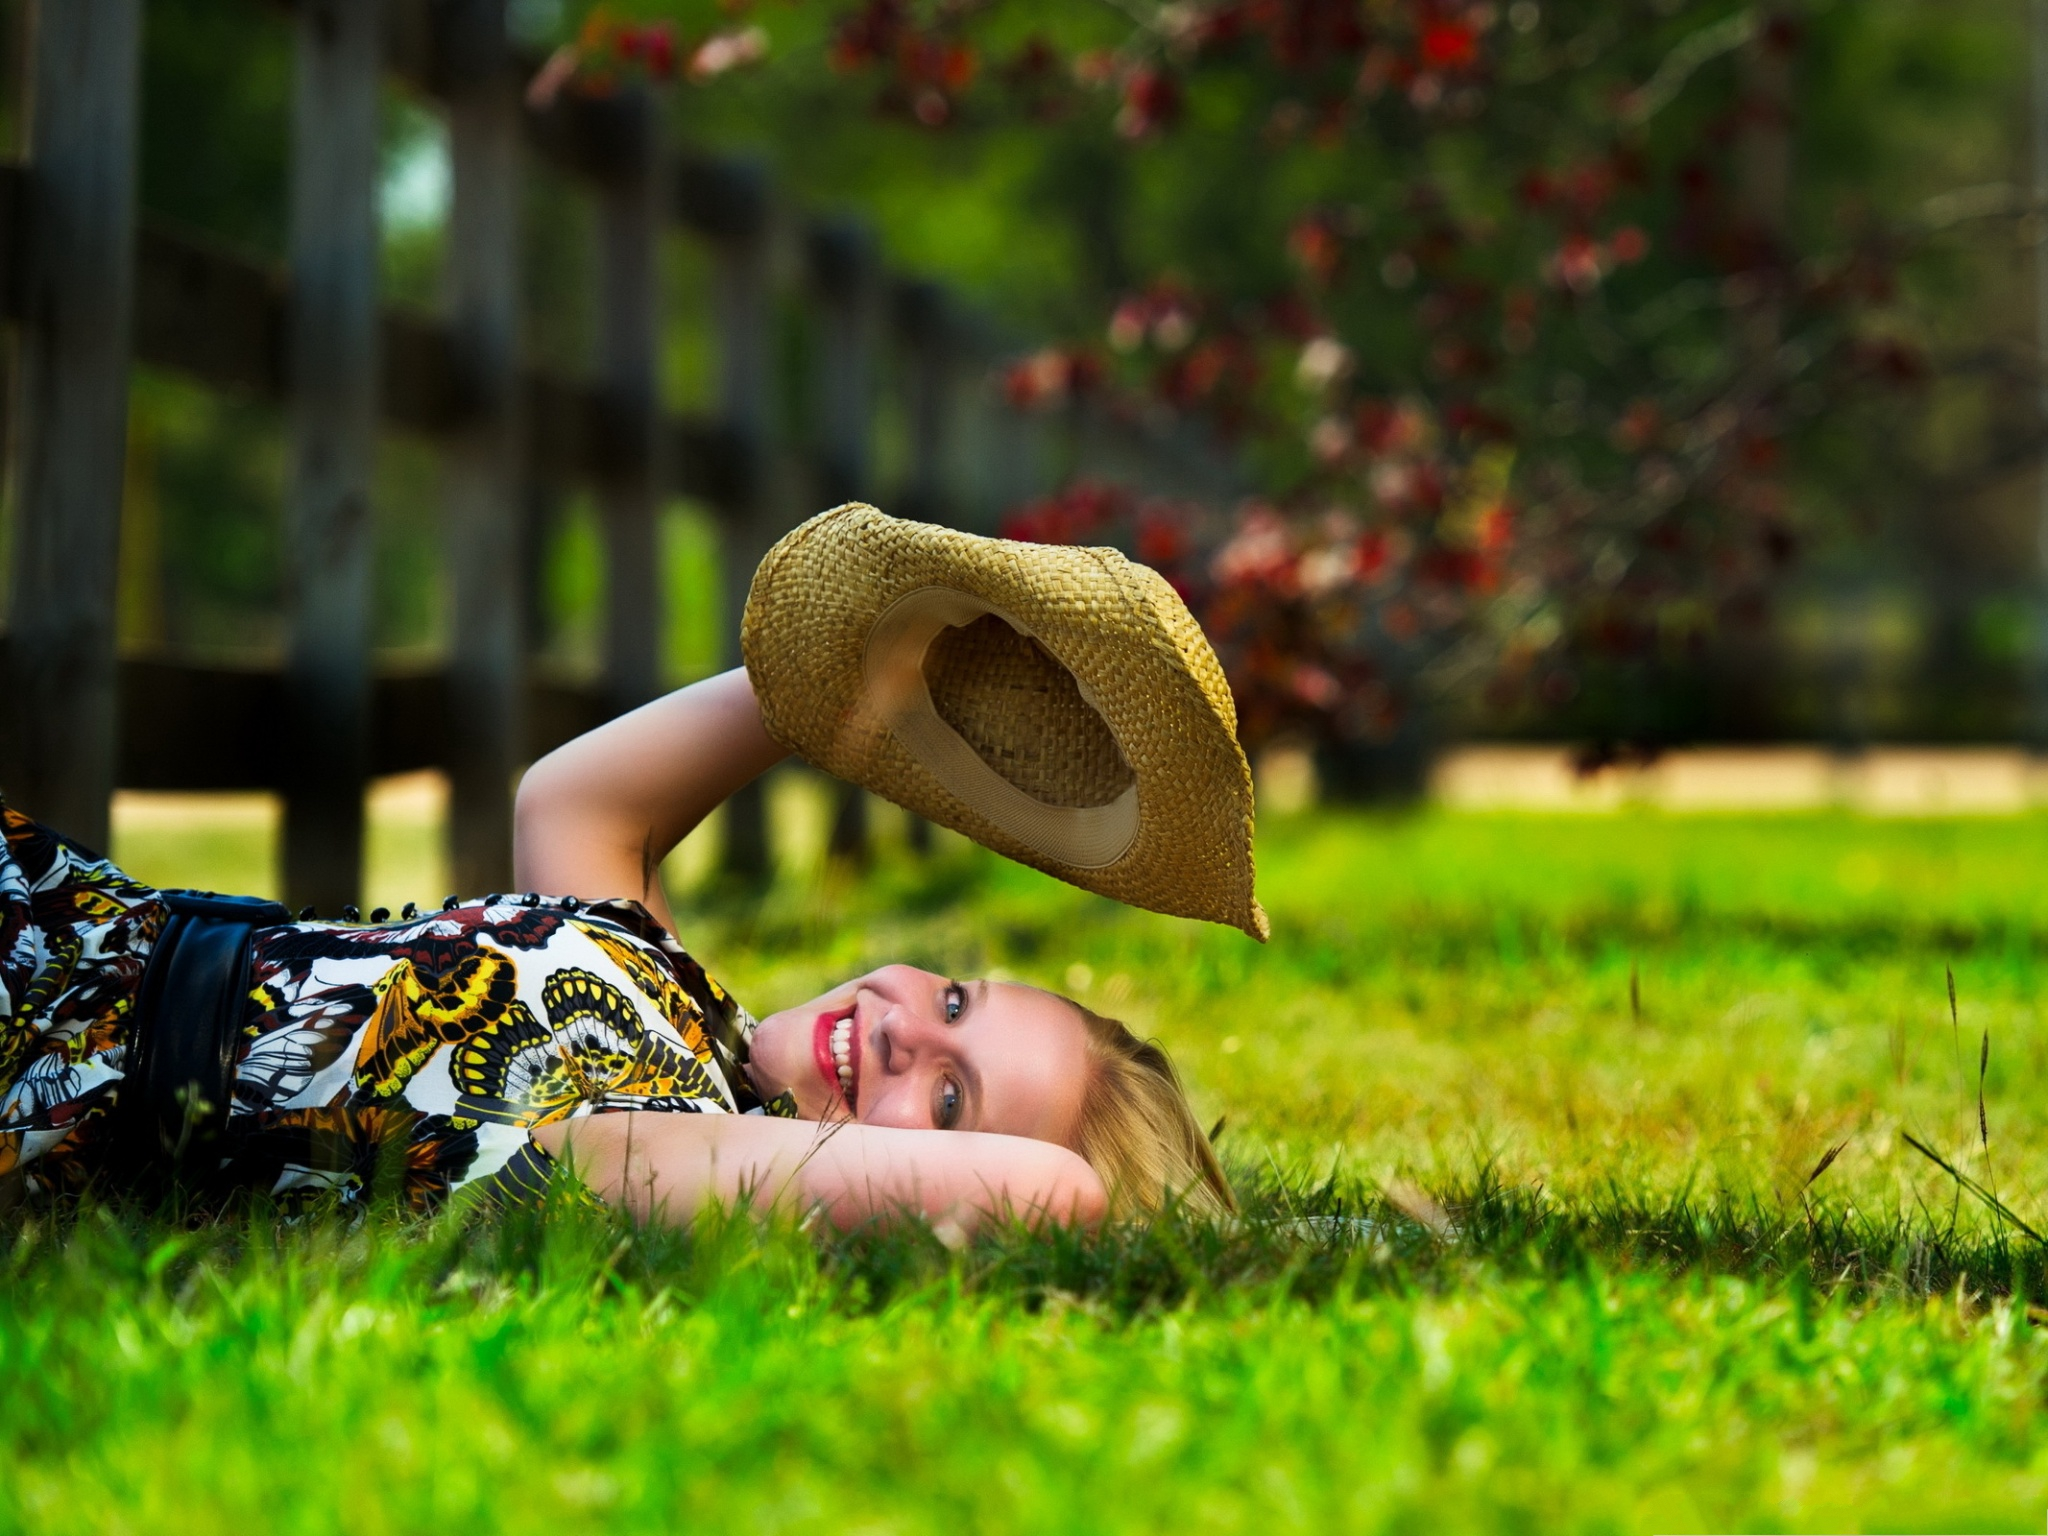 click to free download the wallpaper--Beautiful Girls Picture, Smiling Girl Lying on Green Grass, Playing with Hat 2048X1536 free wallpaper download